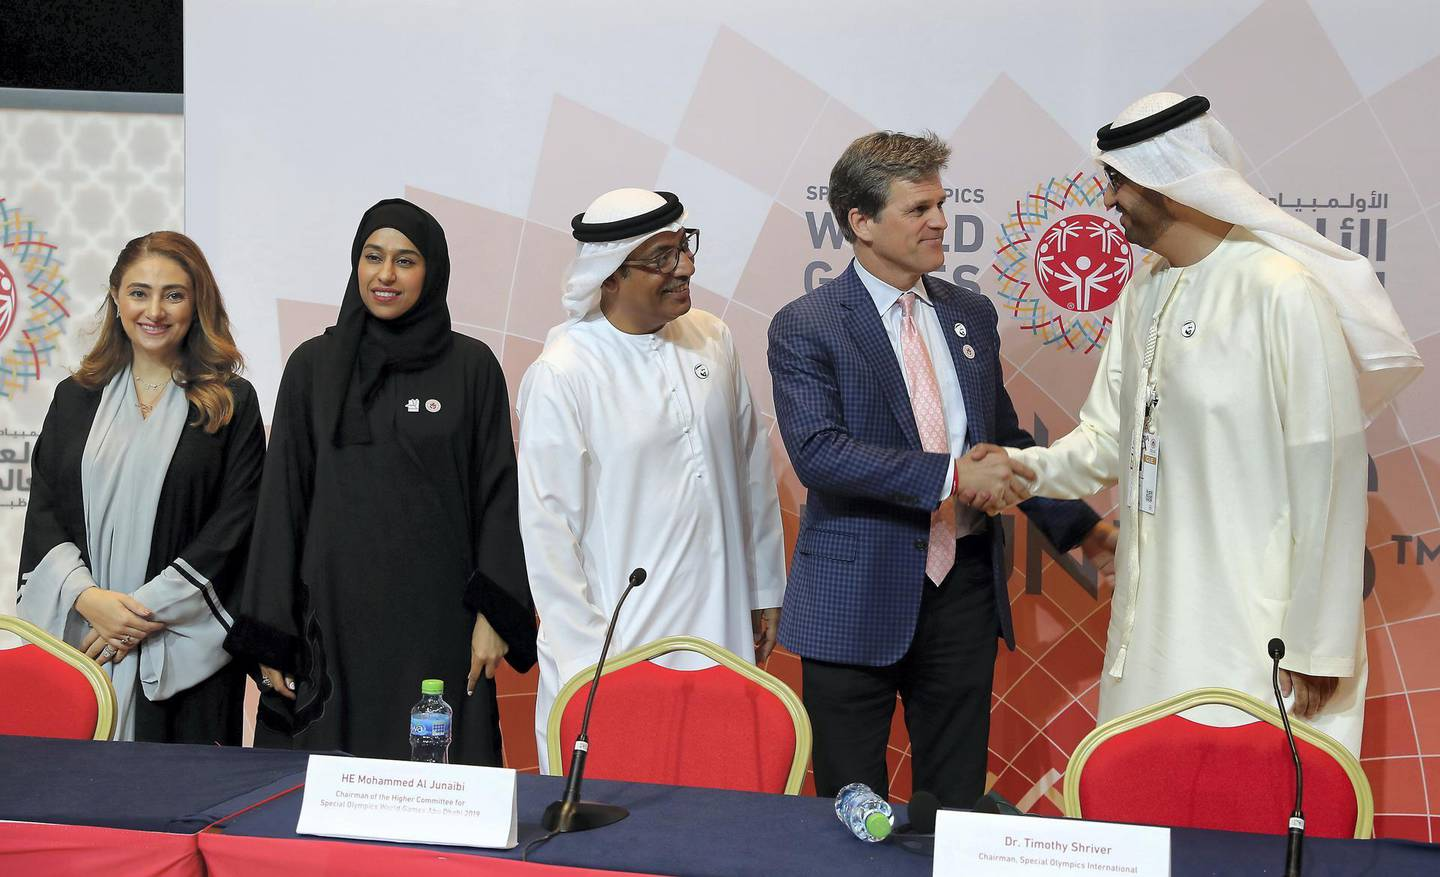 ABU DHABI , UNITED ARAB EMIRATES , March 21 – 2019 :- Left to Right – Tala Al Ramahi , Chief Strategy Officer, Special Olympics World Games Abu Dhabi 2019, Hessa Bint Essa Buhumaid, UAE Minister of Community Development, Mohammed Al Junaibi , Chairman of the Higher Committee for Special Olympics World Games Abu Dhabi 2019, Dr. Timothy Shriver, Chairman, Special Olympics International and Dr. Sultan Al Jaber, UAE Minister of State and CEO, ADNOC Group during the closing press conference of the Special Olympics World Games Abu Dhabi 2019 held at ADNEC in Abu Dhabi. ( Pawan Singh / The National ) For News. Story by Haneen